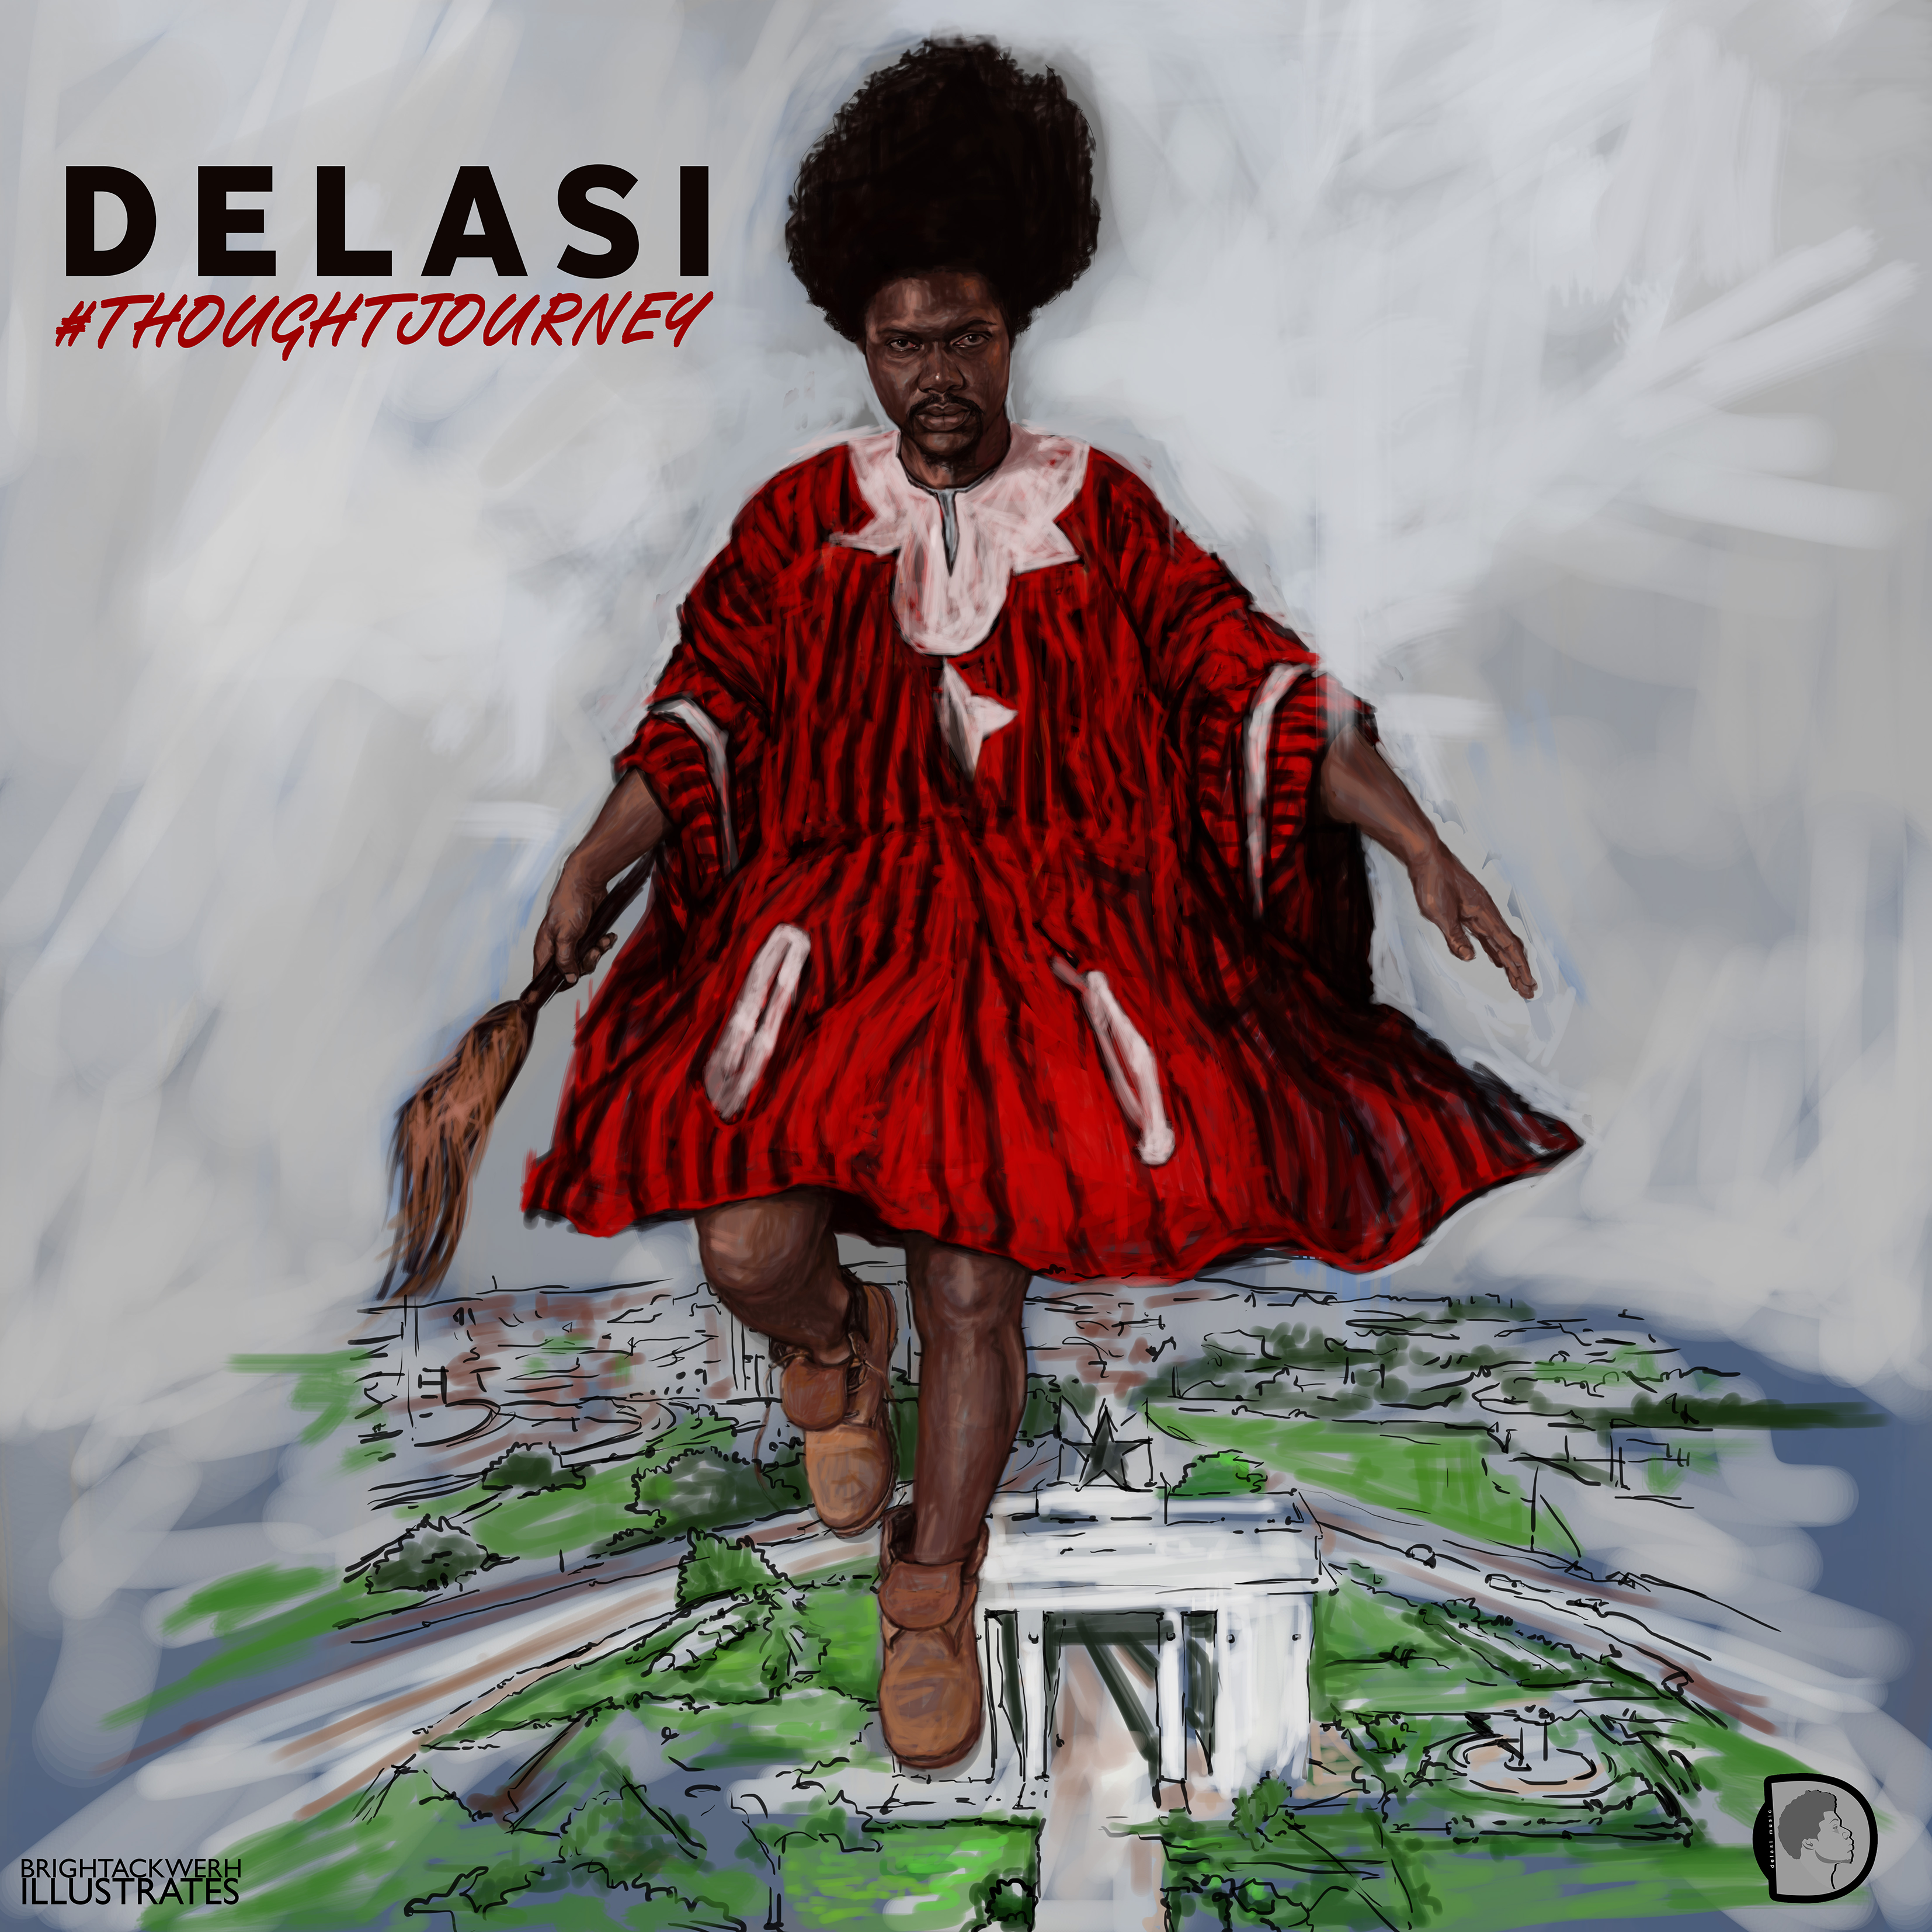 Delasi's Thought Journey album cover illustrated by Bright Ackwerh.